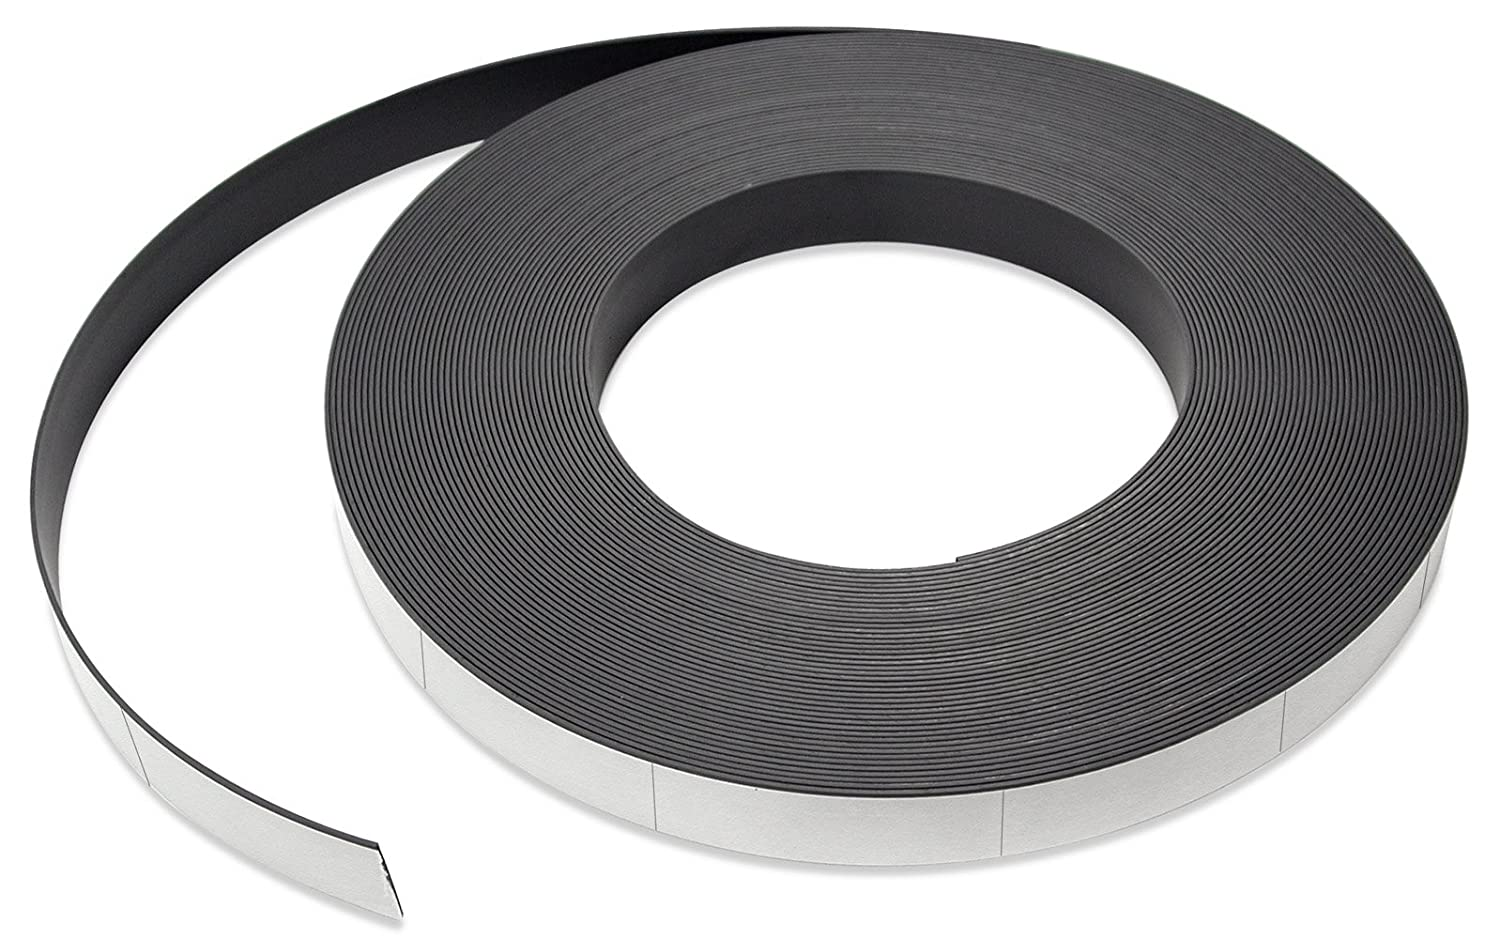 Flexible Magnet Strip with White Vinyl Coating, 1/32' Thick, 1' Height, 50 Feet, Scored Every 3', 1 Roll with 197-1' x 3' Pieces (1 pack) ZGN03040W/WKS50S3 1/32 Thick 1 Height Scored Every 3 1 Roll with 197-1 x 3 Pieces (1 pack) ZGN03040W/WKS50S3 Inc.